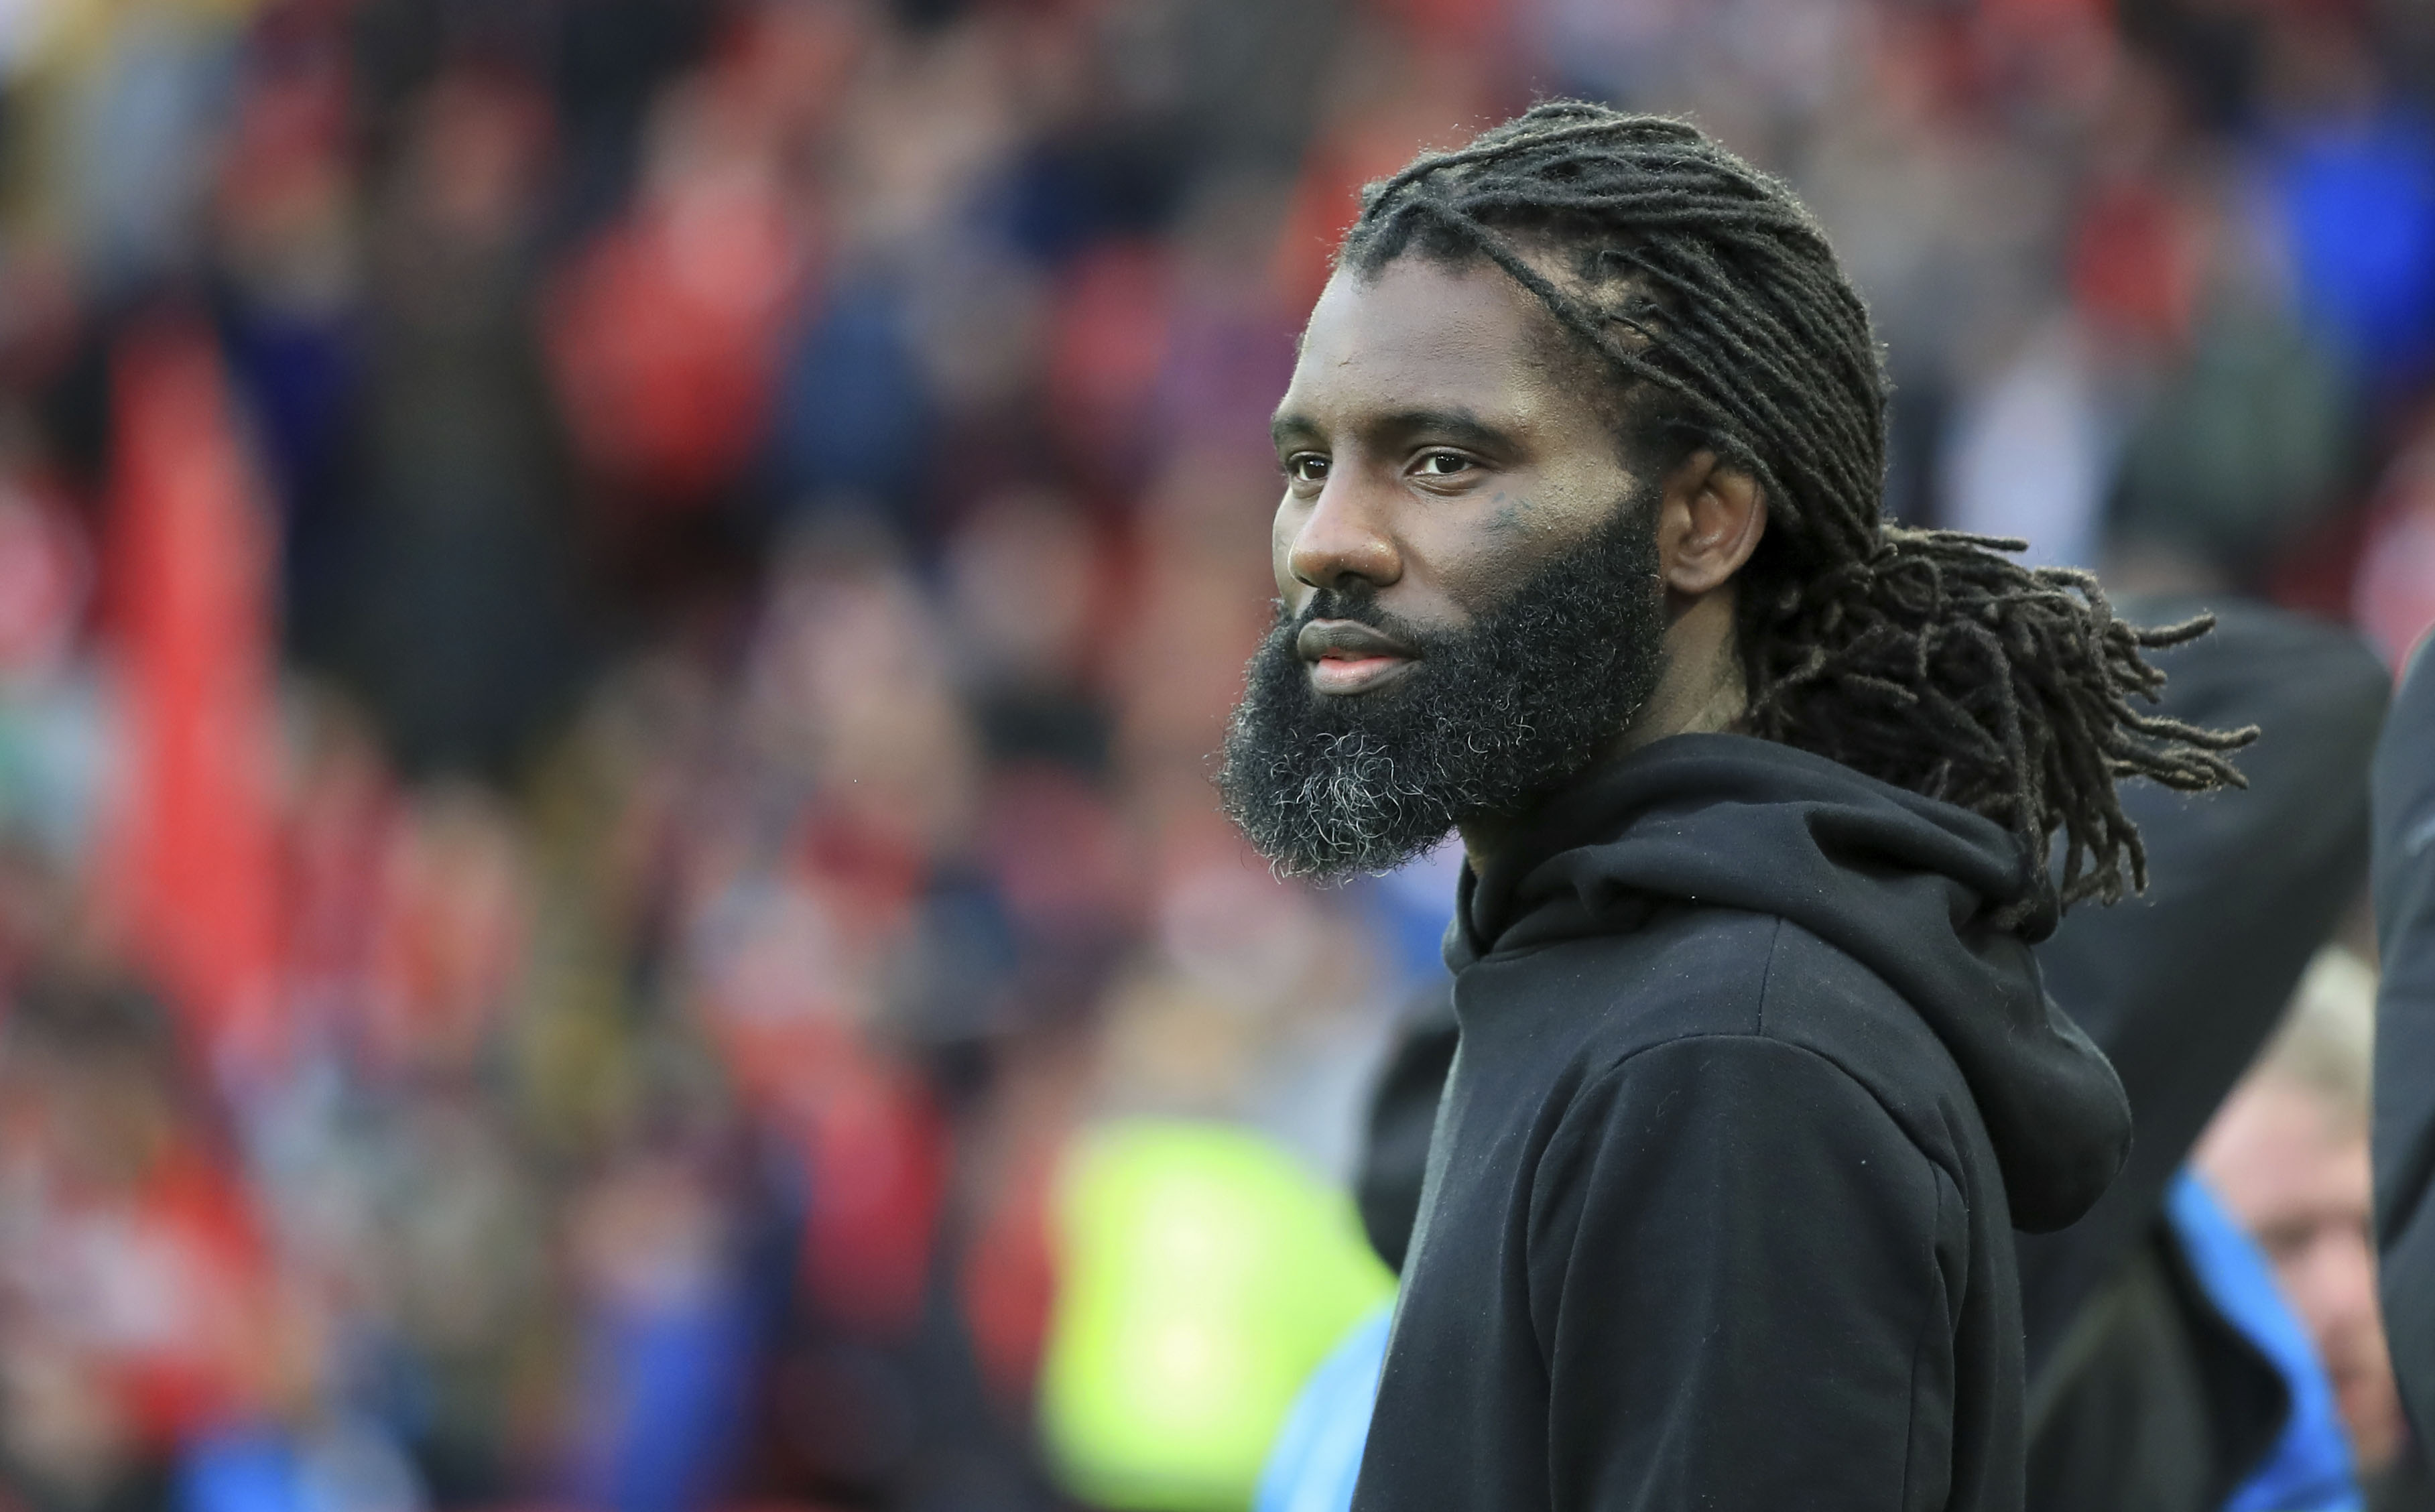 Wretch 32 attends a UEFA Champions League match in Liverpool, England, on May 7, 2019.